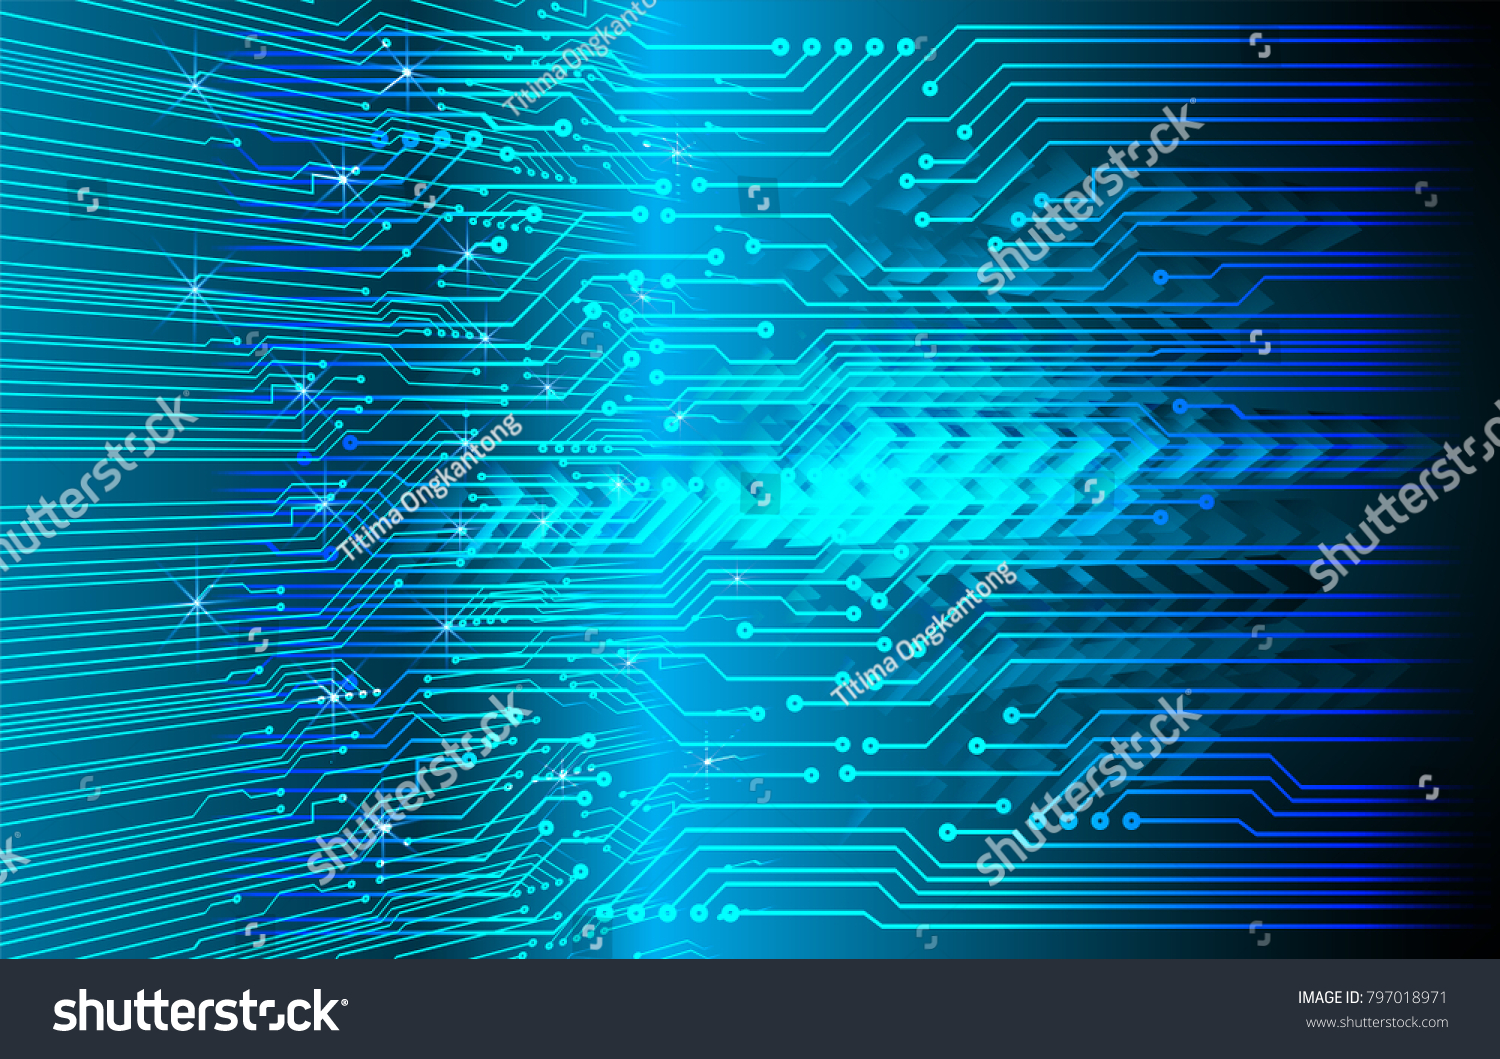 Blue Arrow Abstract Light Hi Speed Internet Technology Background Photo Of Vector With High Tech Circuit Board Illustration Conceptual Image Digital Cyber Security Concept Data